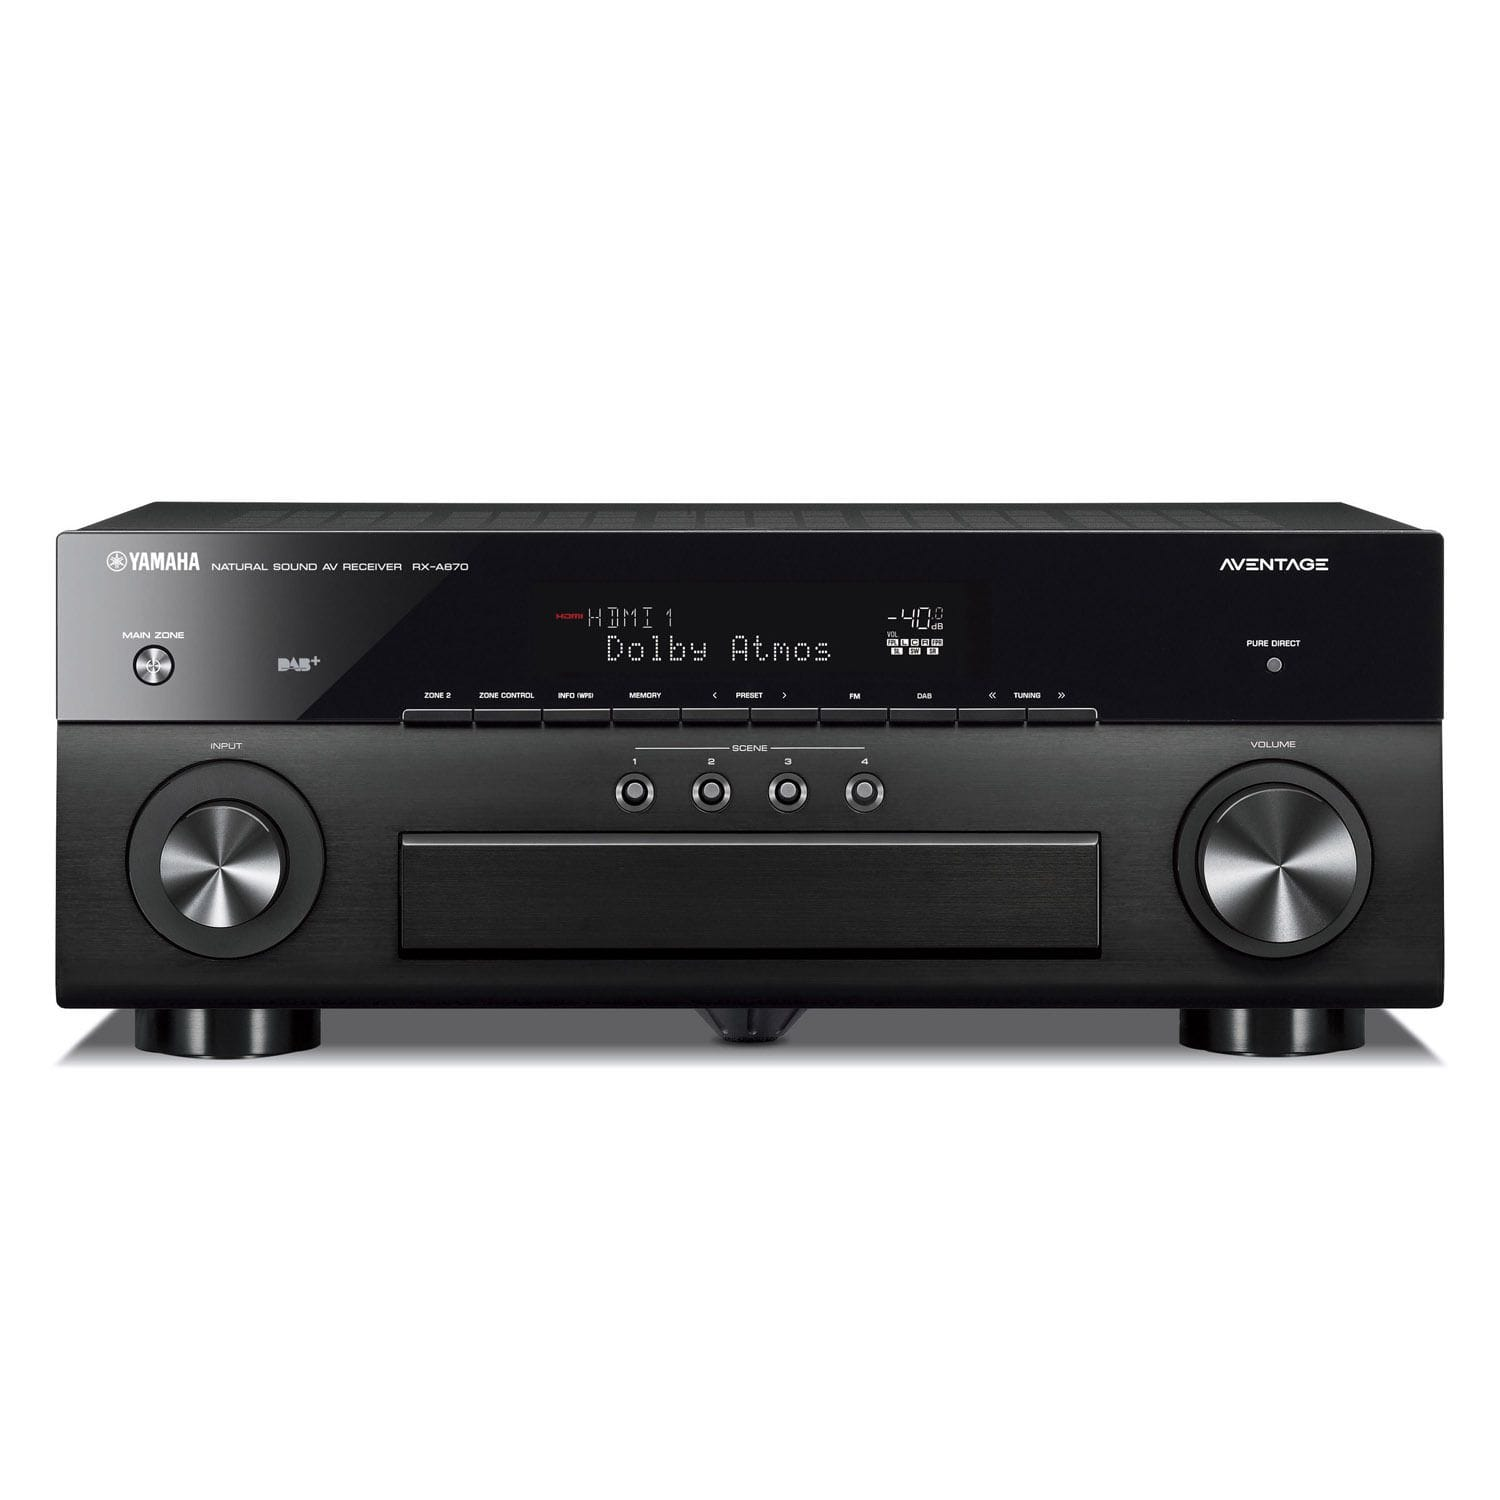 Yamaha AVENTAGE RX-A870 7.2 Channel AV Receiver